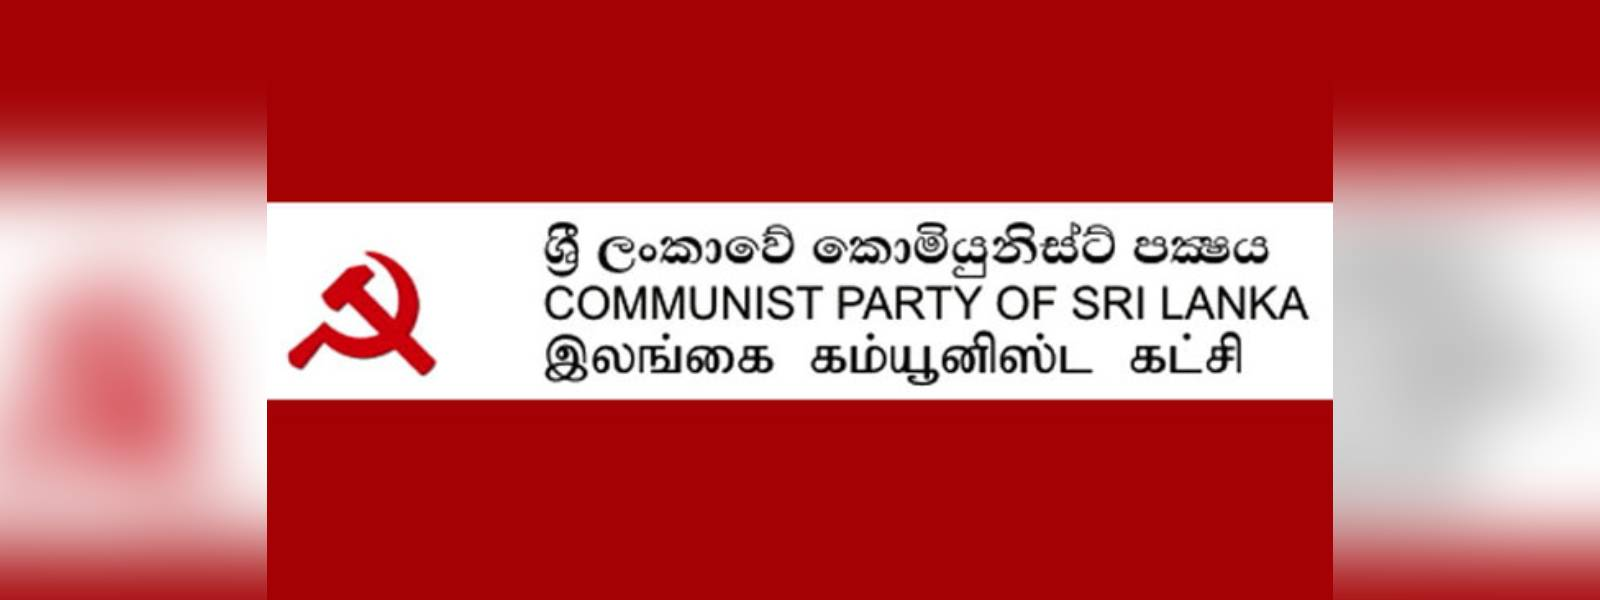 New leader appointed for Communist Party